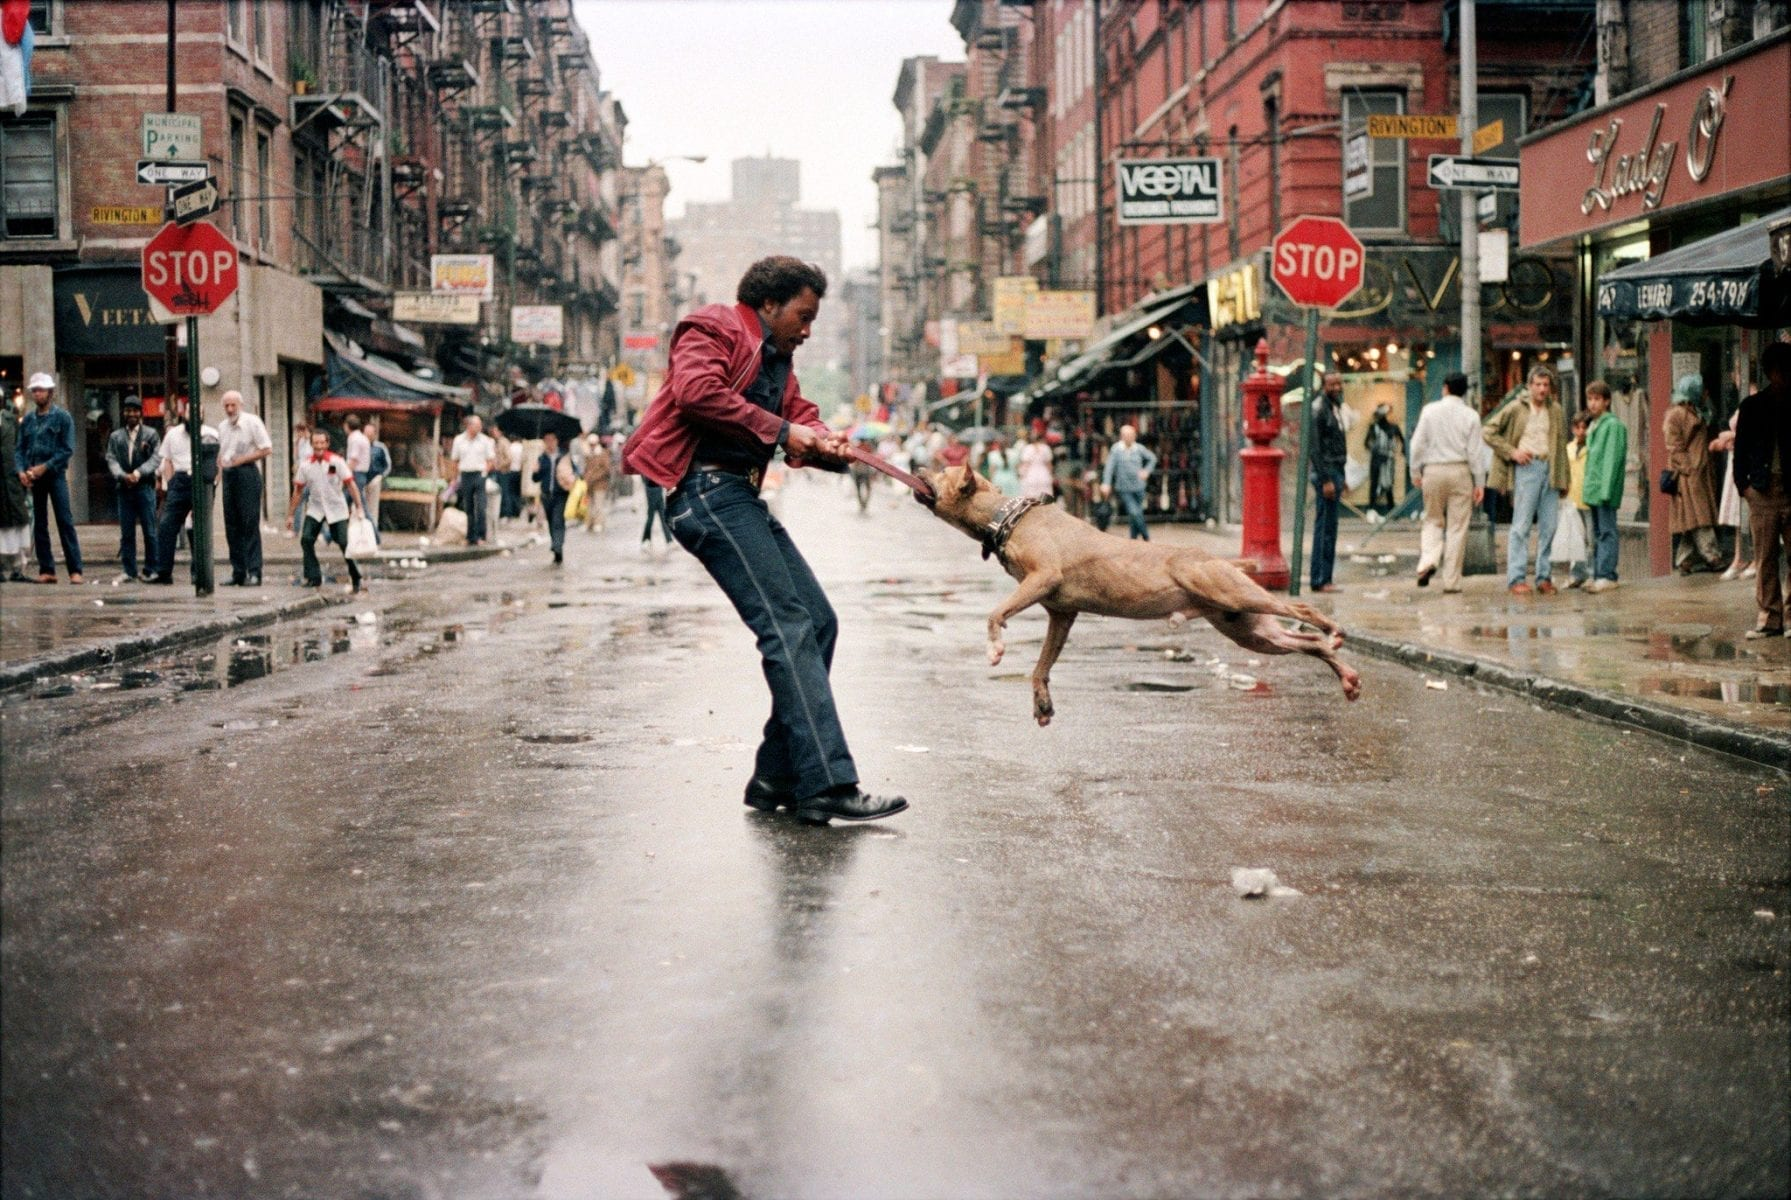 Street Photography,Man and Dog, 1980, New York, Jamel Shabazz Cheryl Dunn Everybody Street